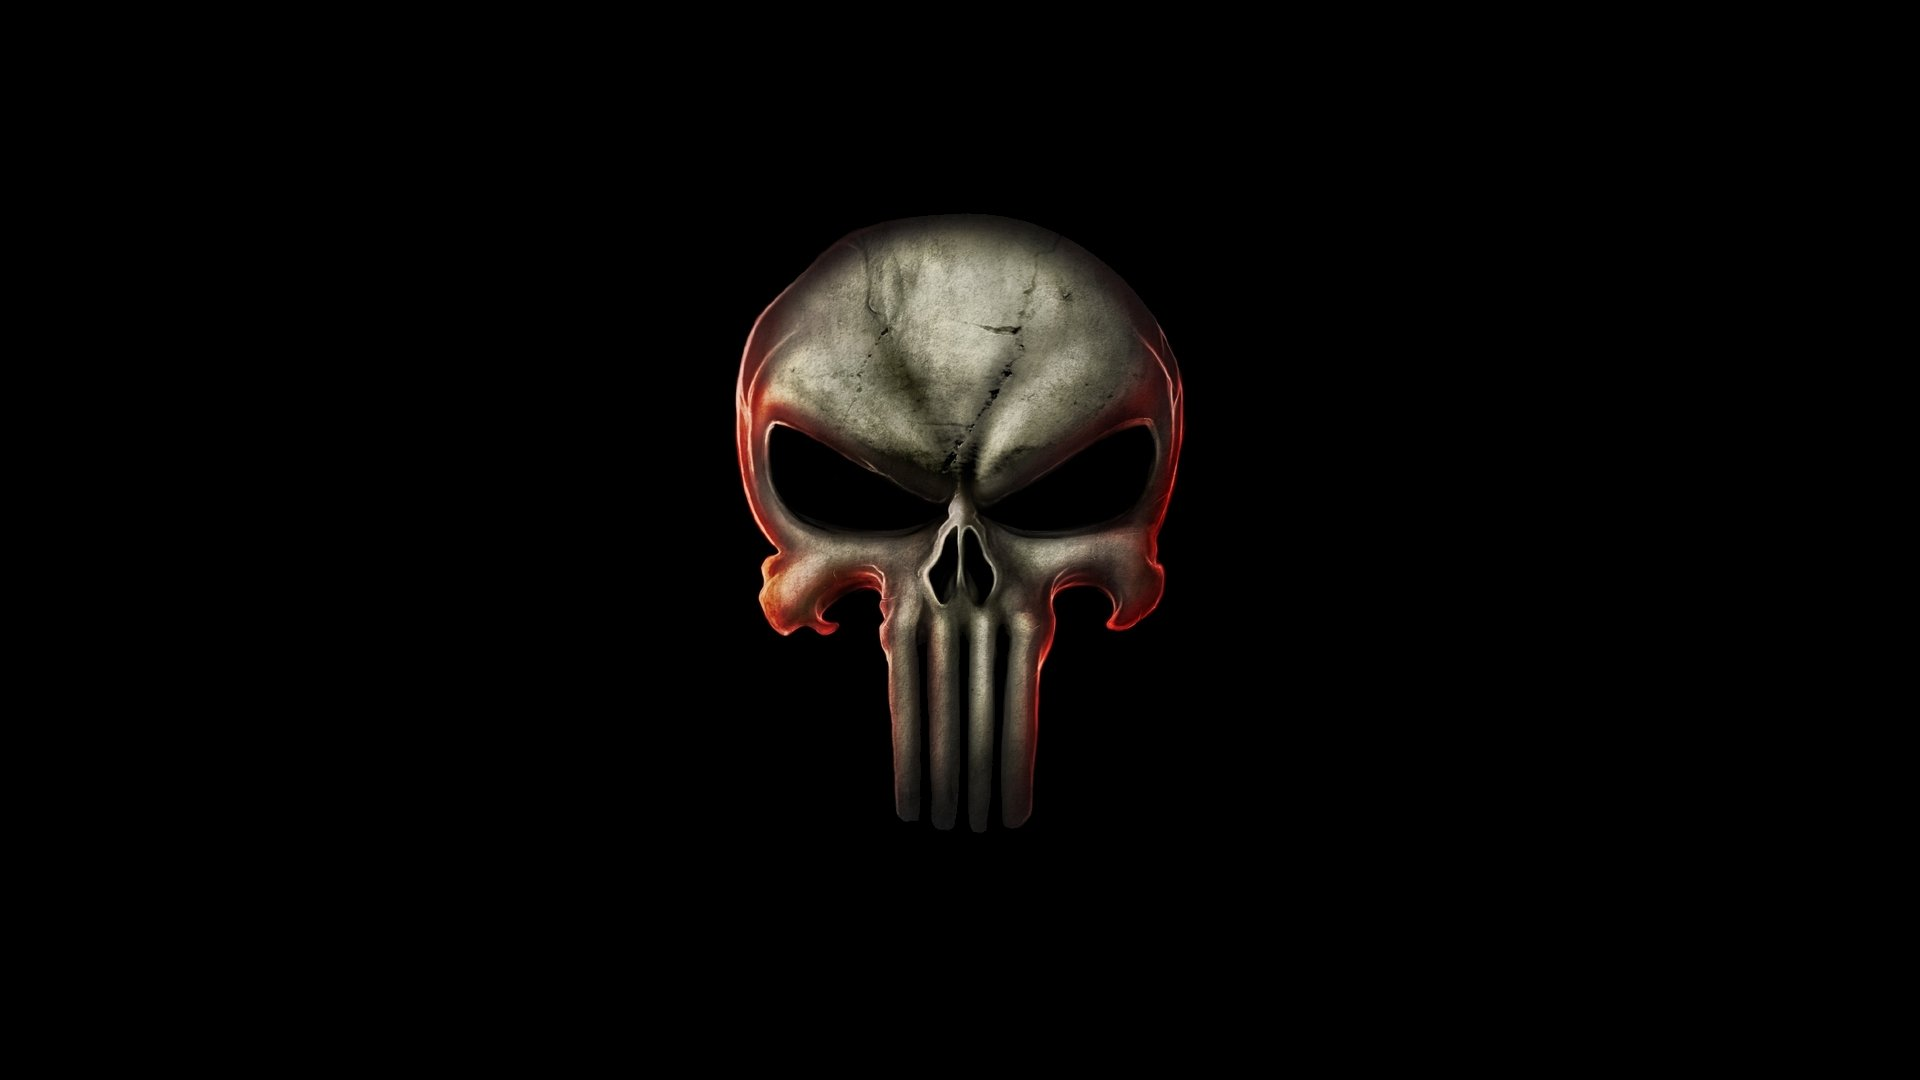 200 punisher hd wallpapers background images wallpaper abyss hd wallpaper background image id527617 voltagebd Images